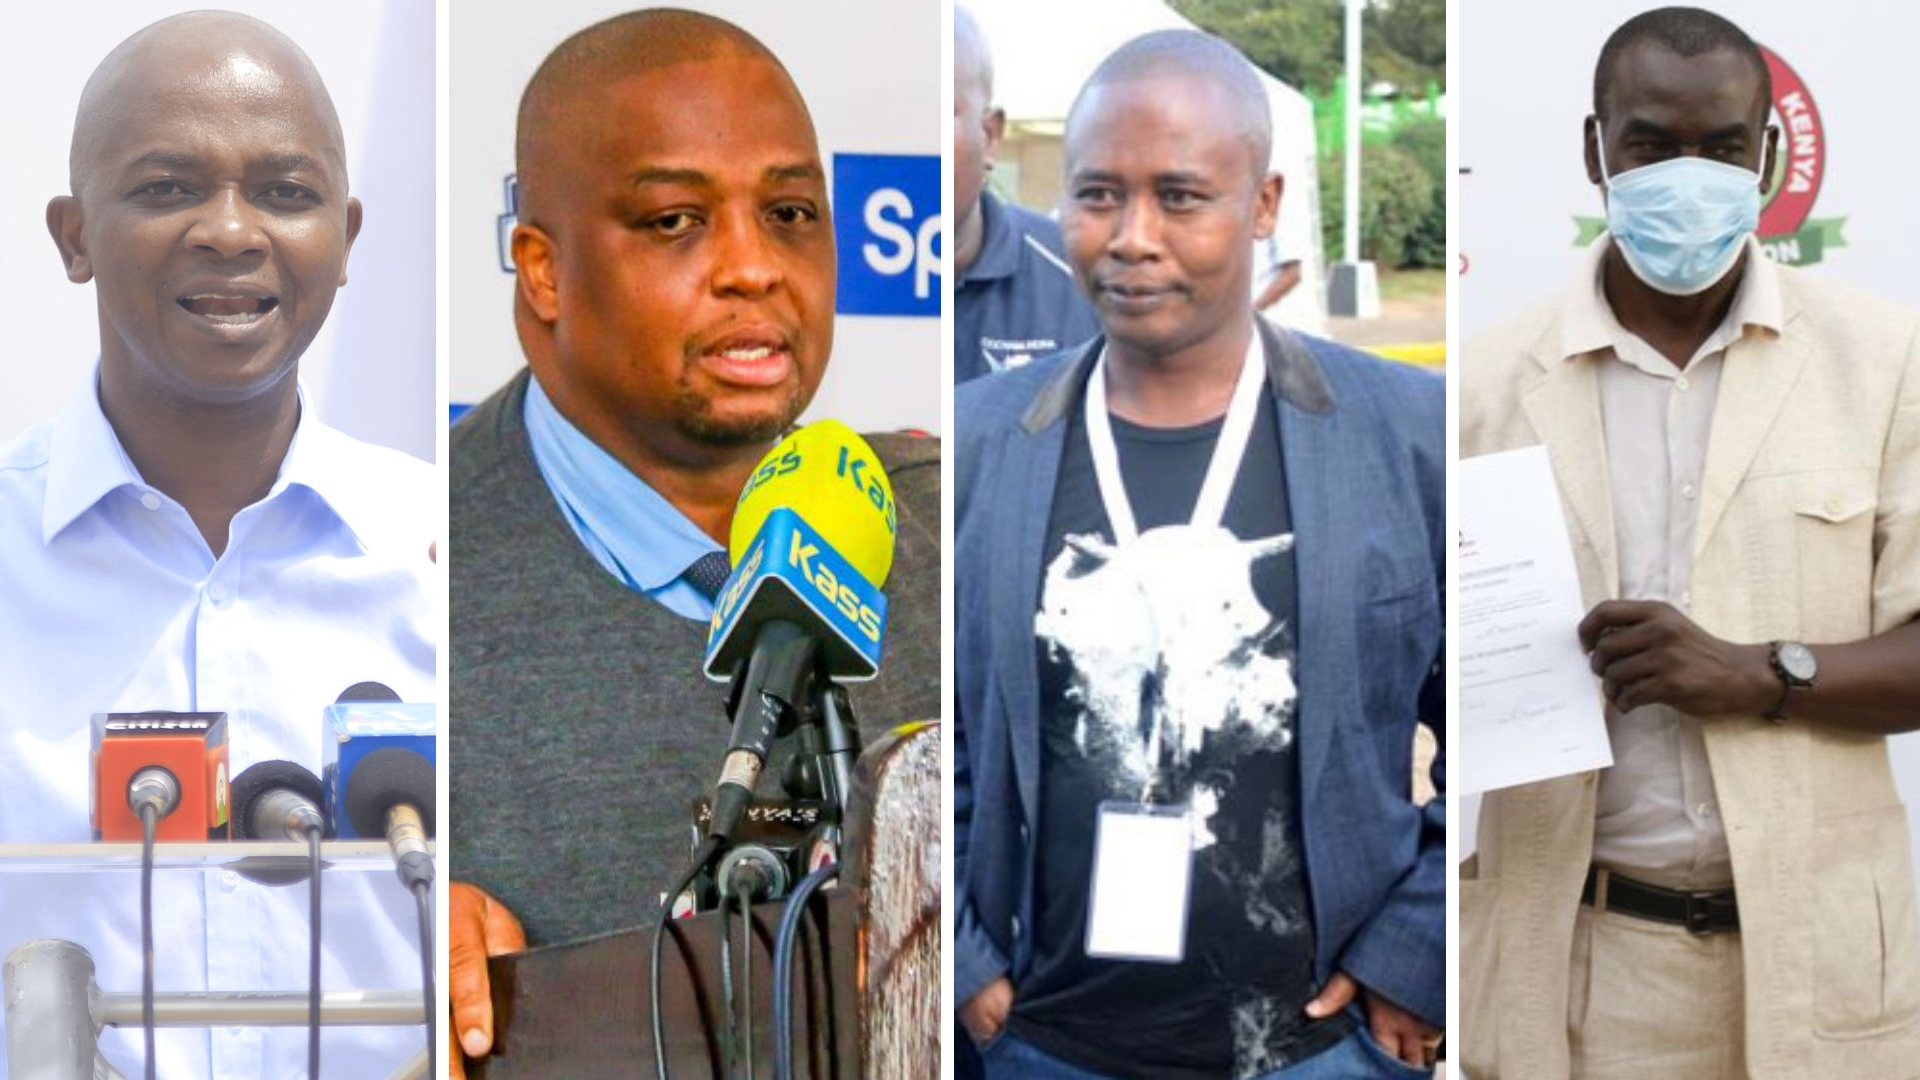 FKF Elections: Board clears four aspirants to battle Mwendwa for top seat